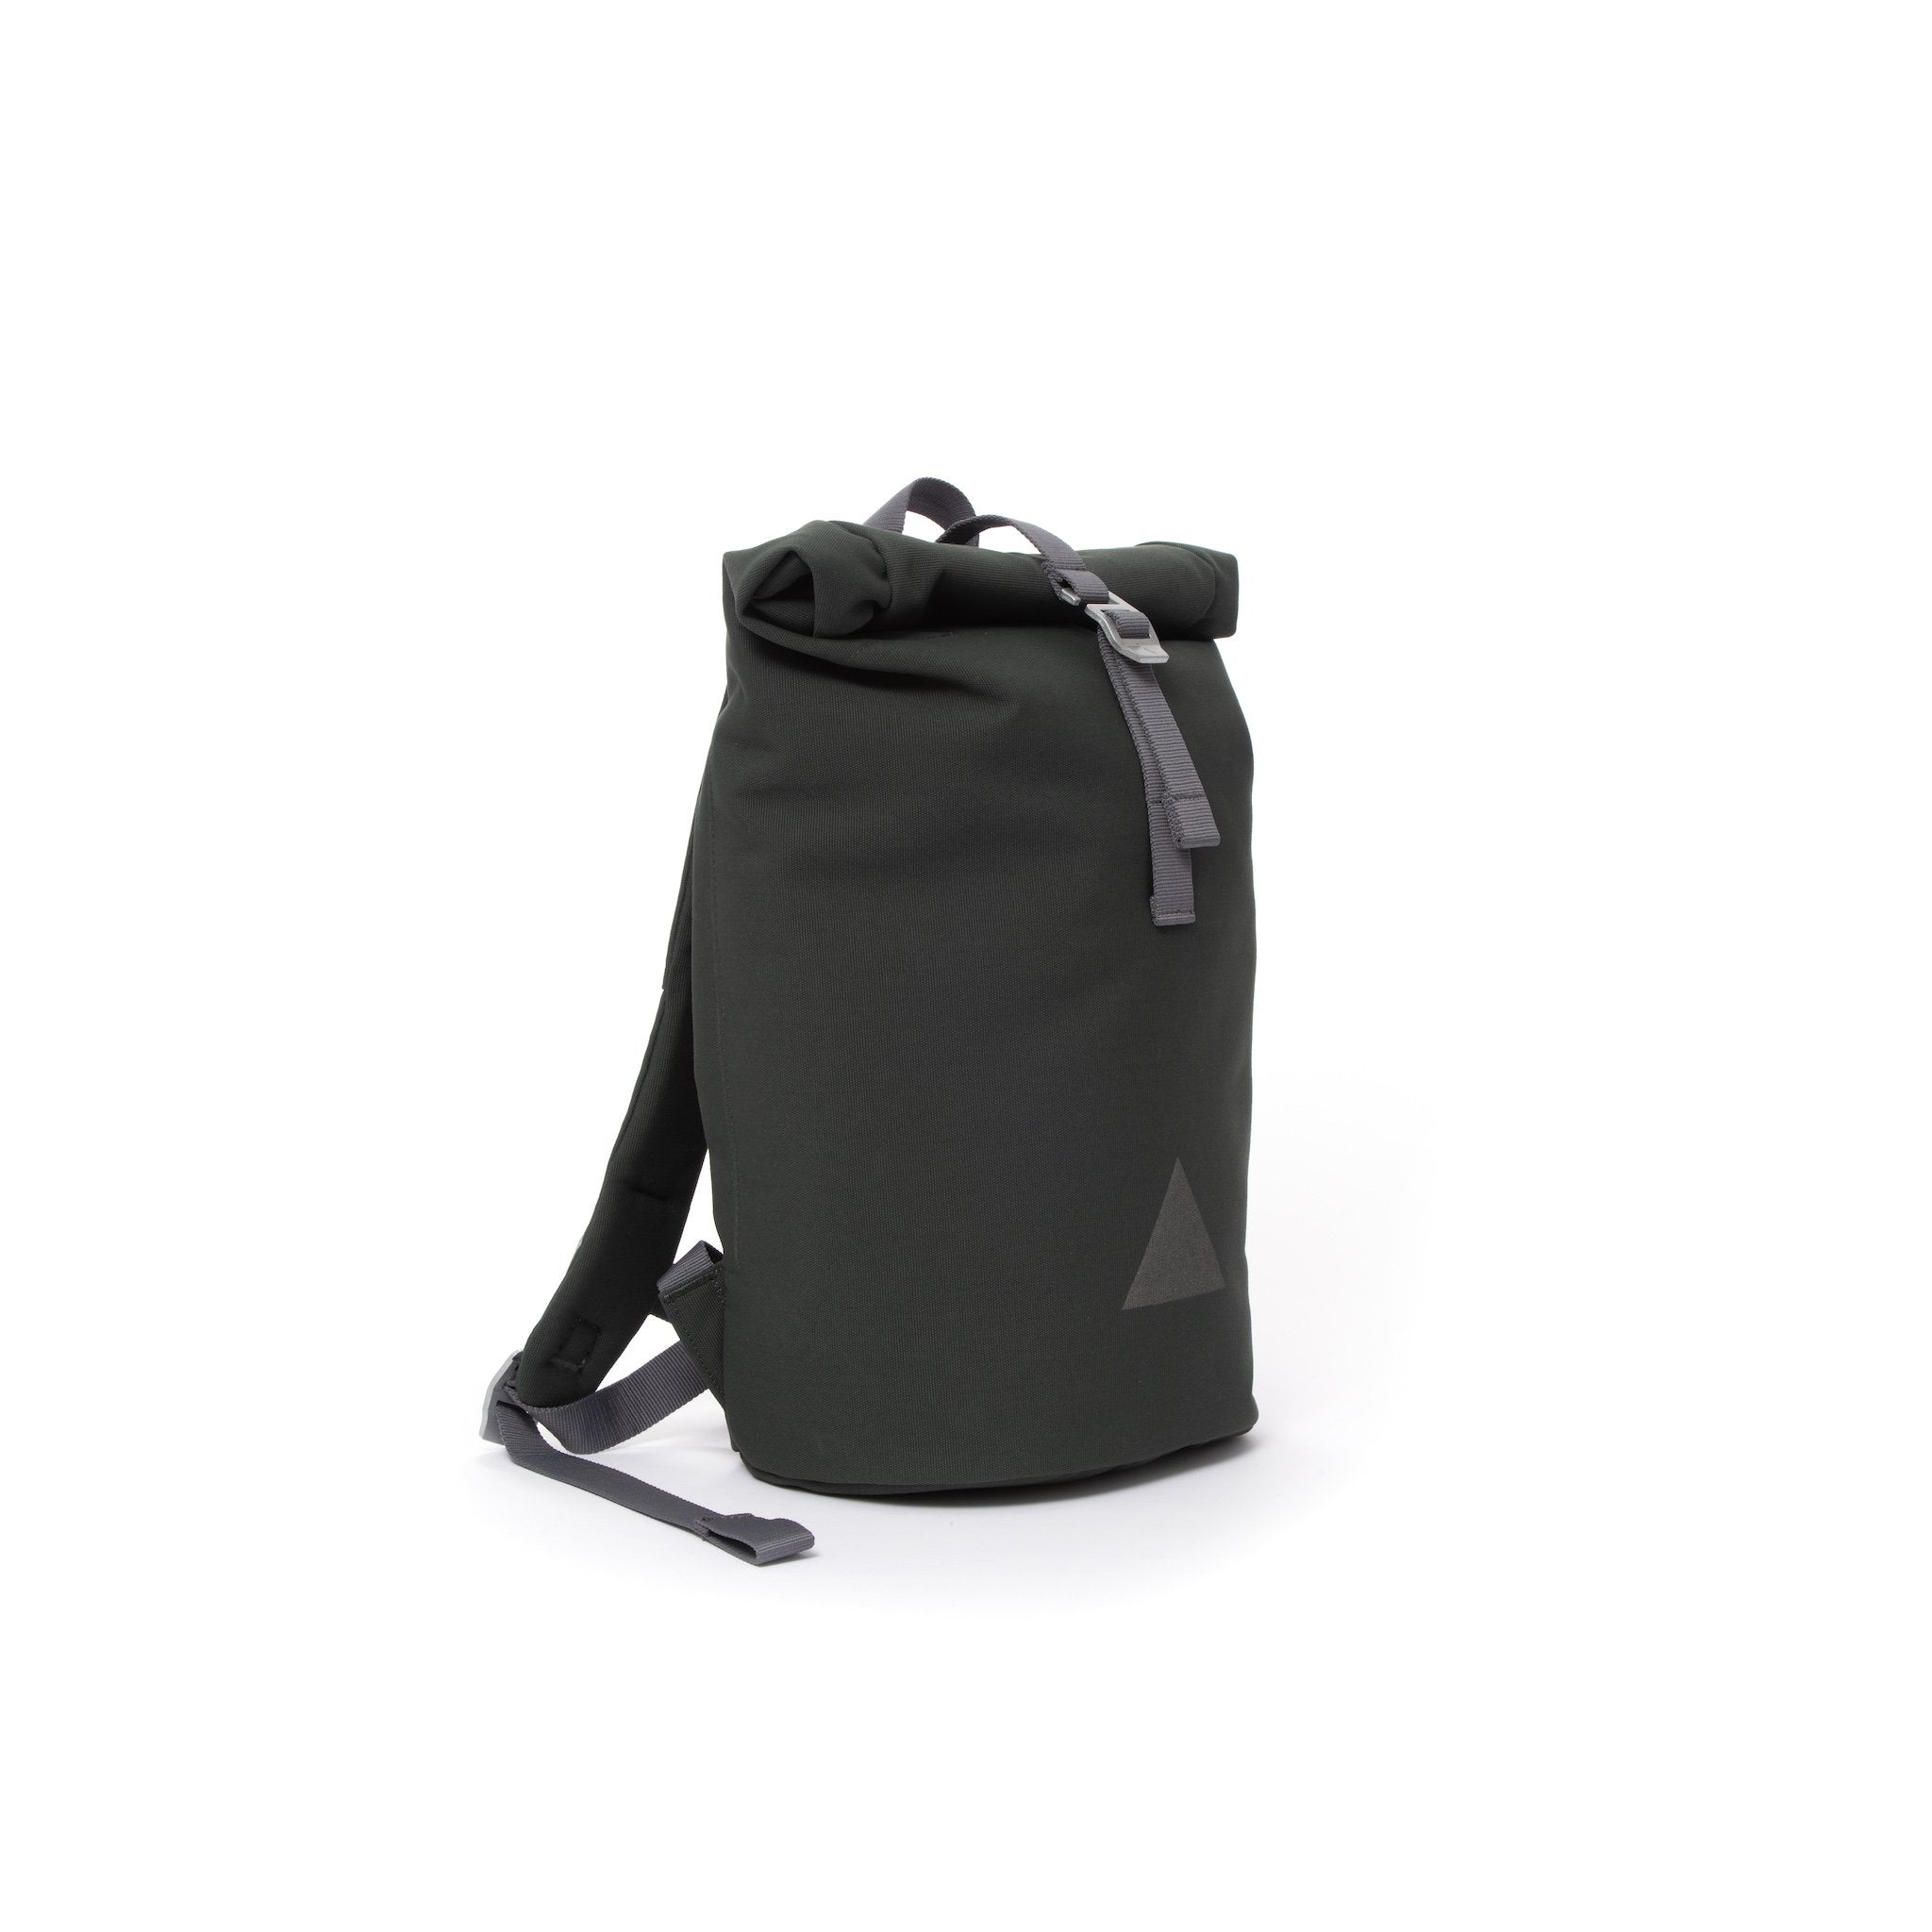 Grey recycled canvas women's rolltop backpack.